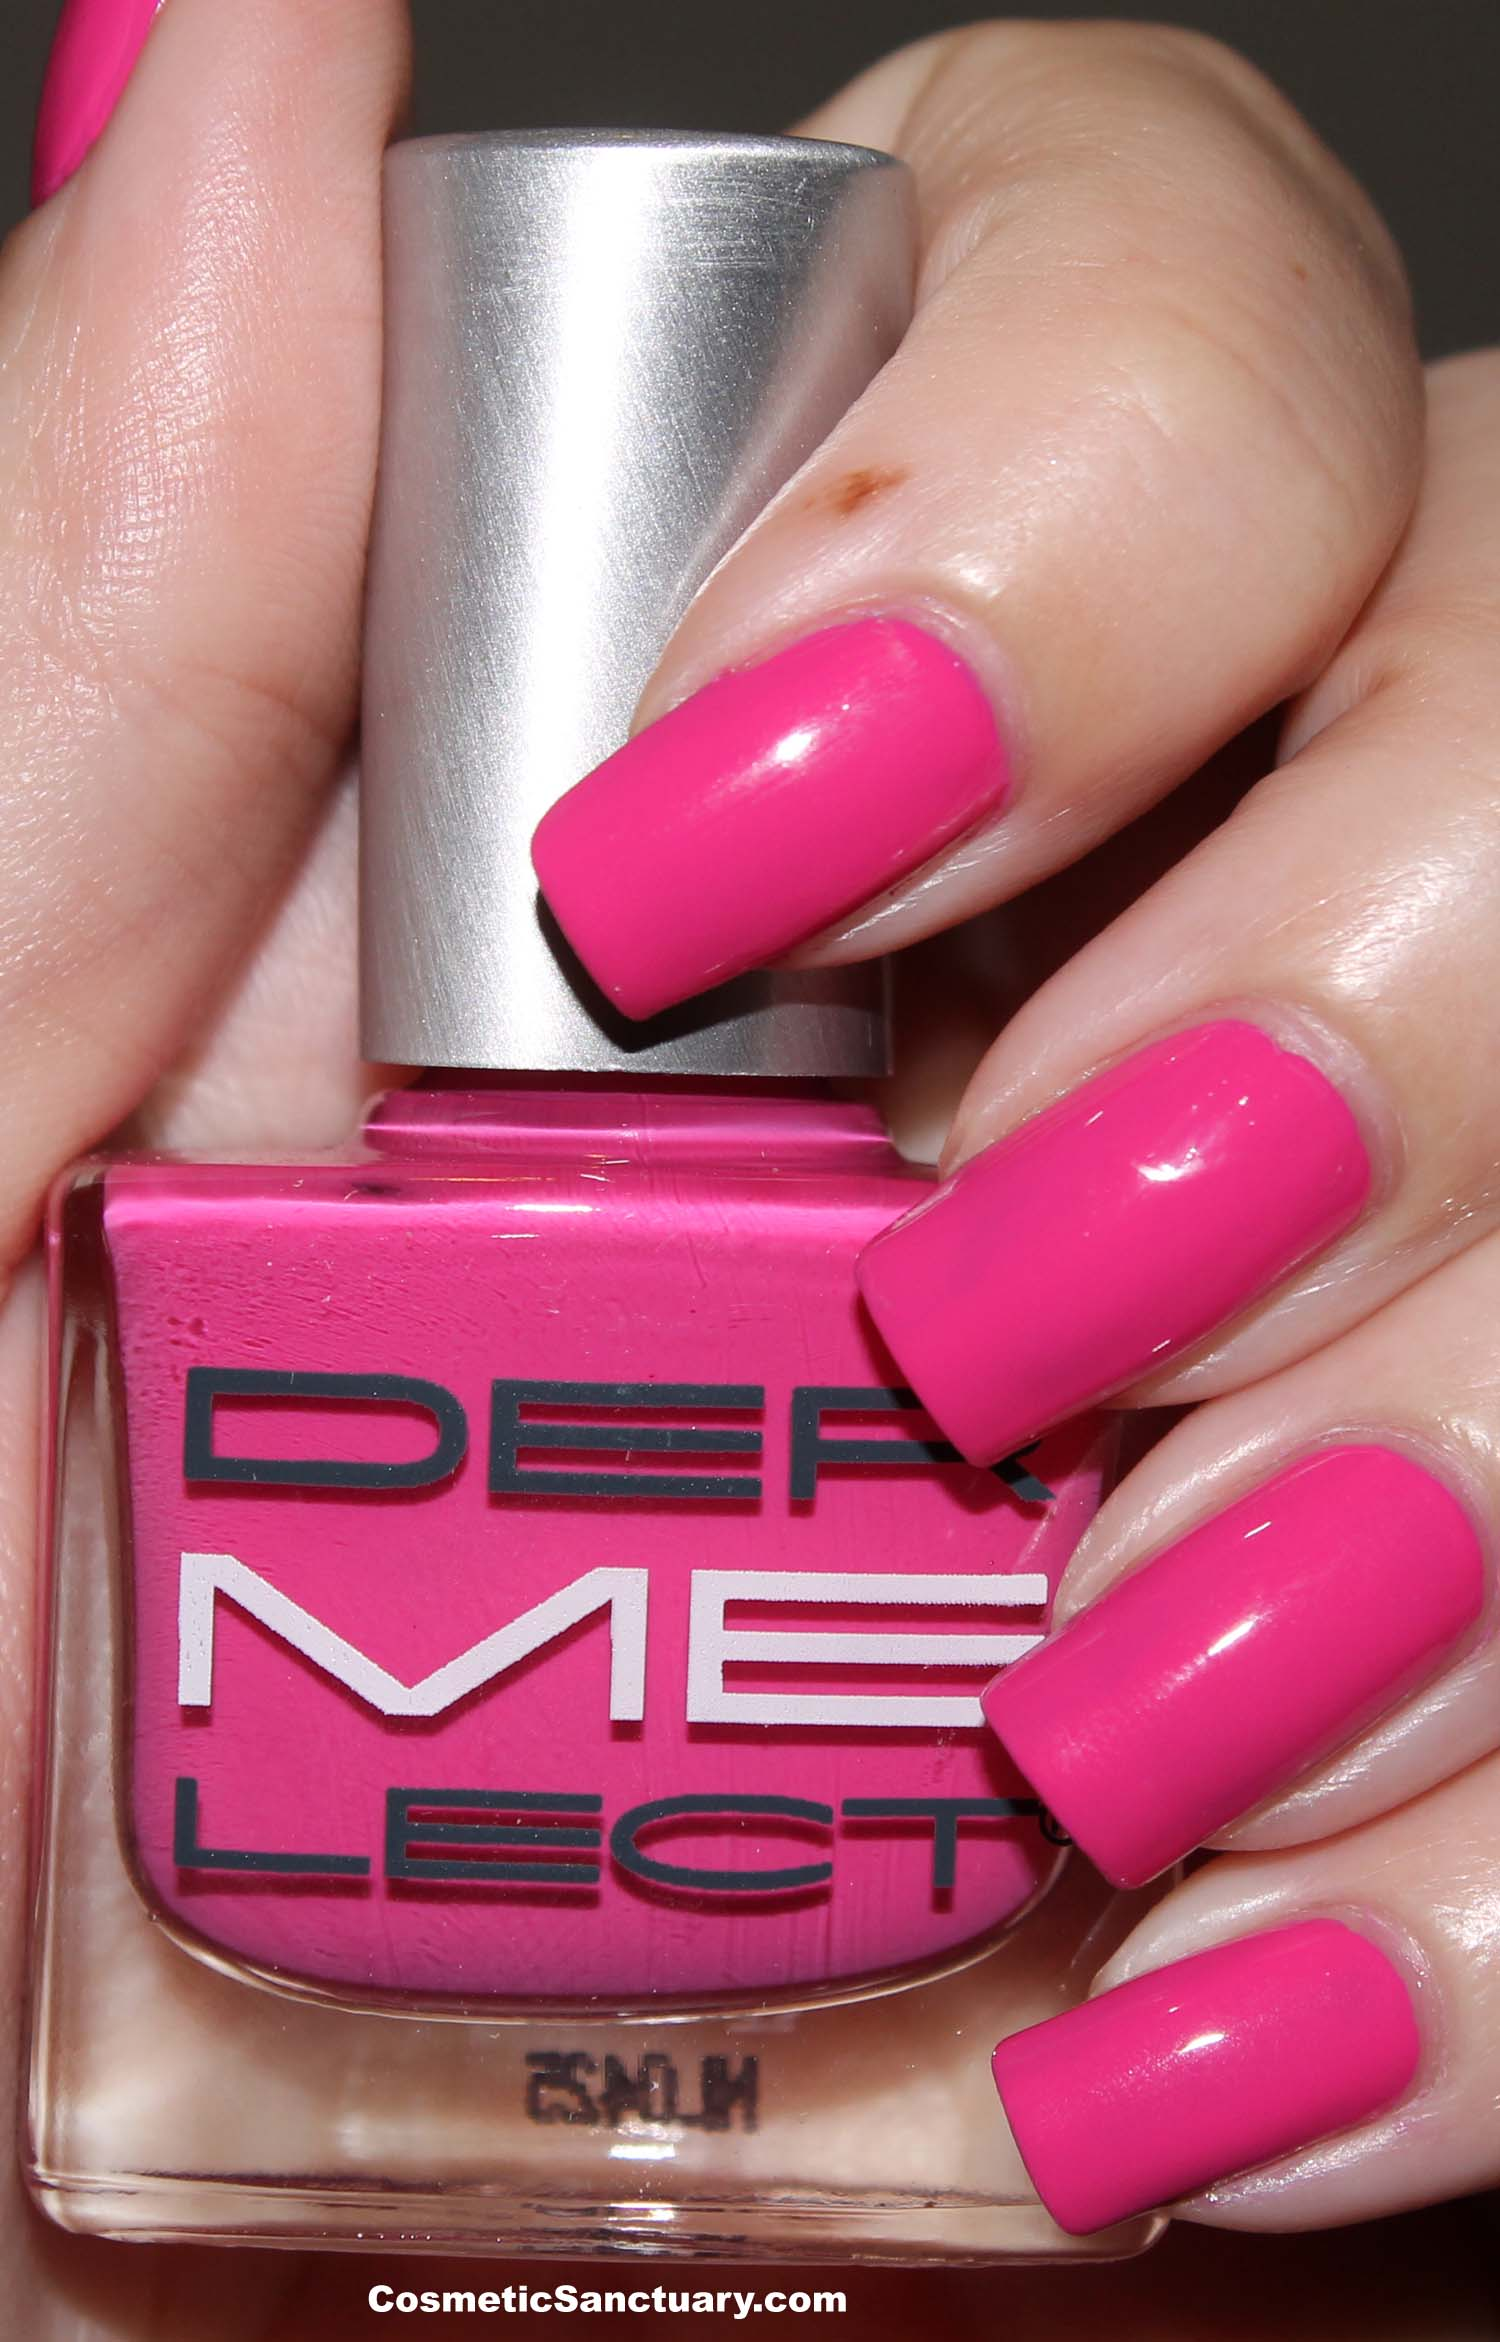 New Dermelect \'ME\' Anti Aging Colored Nail Lacquer Swatches and Review